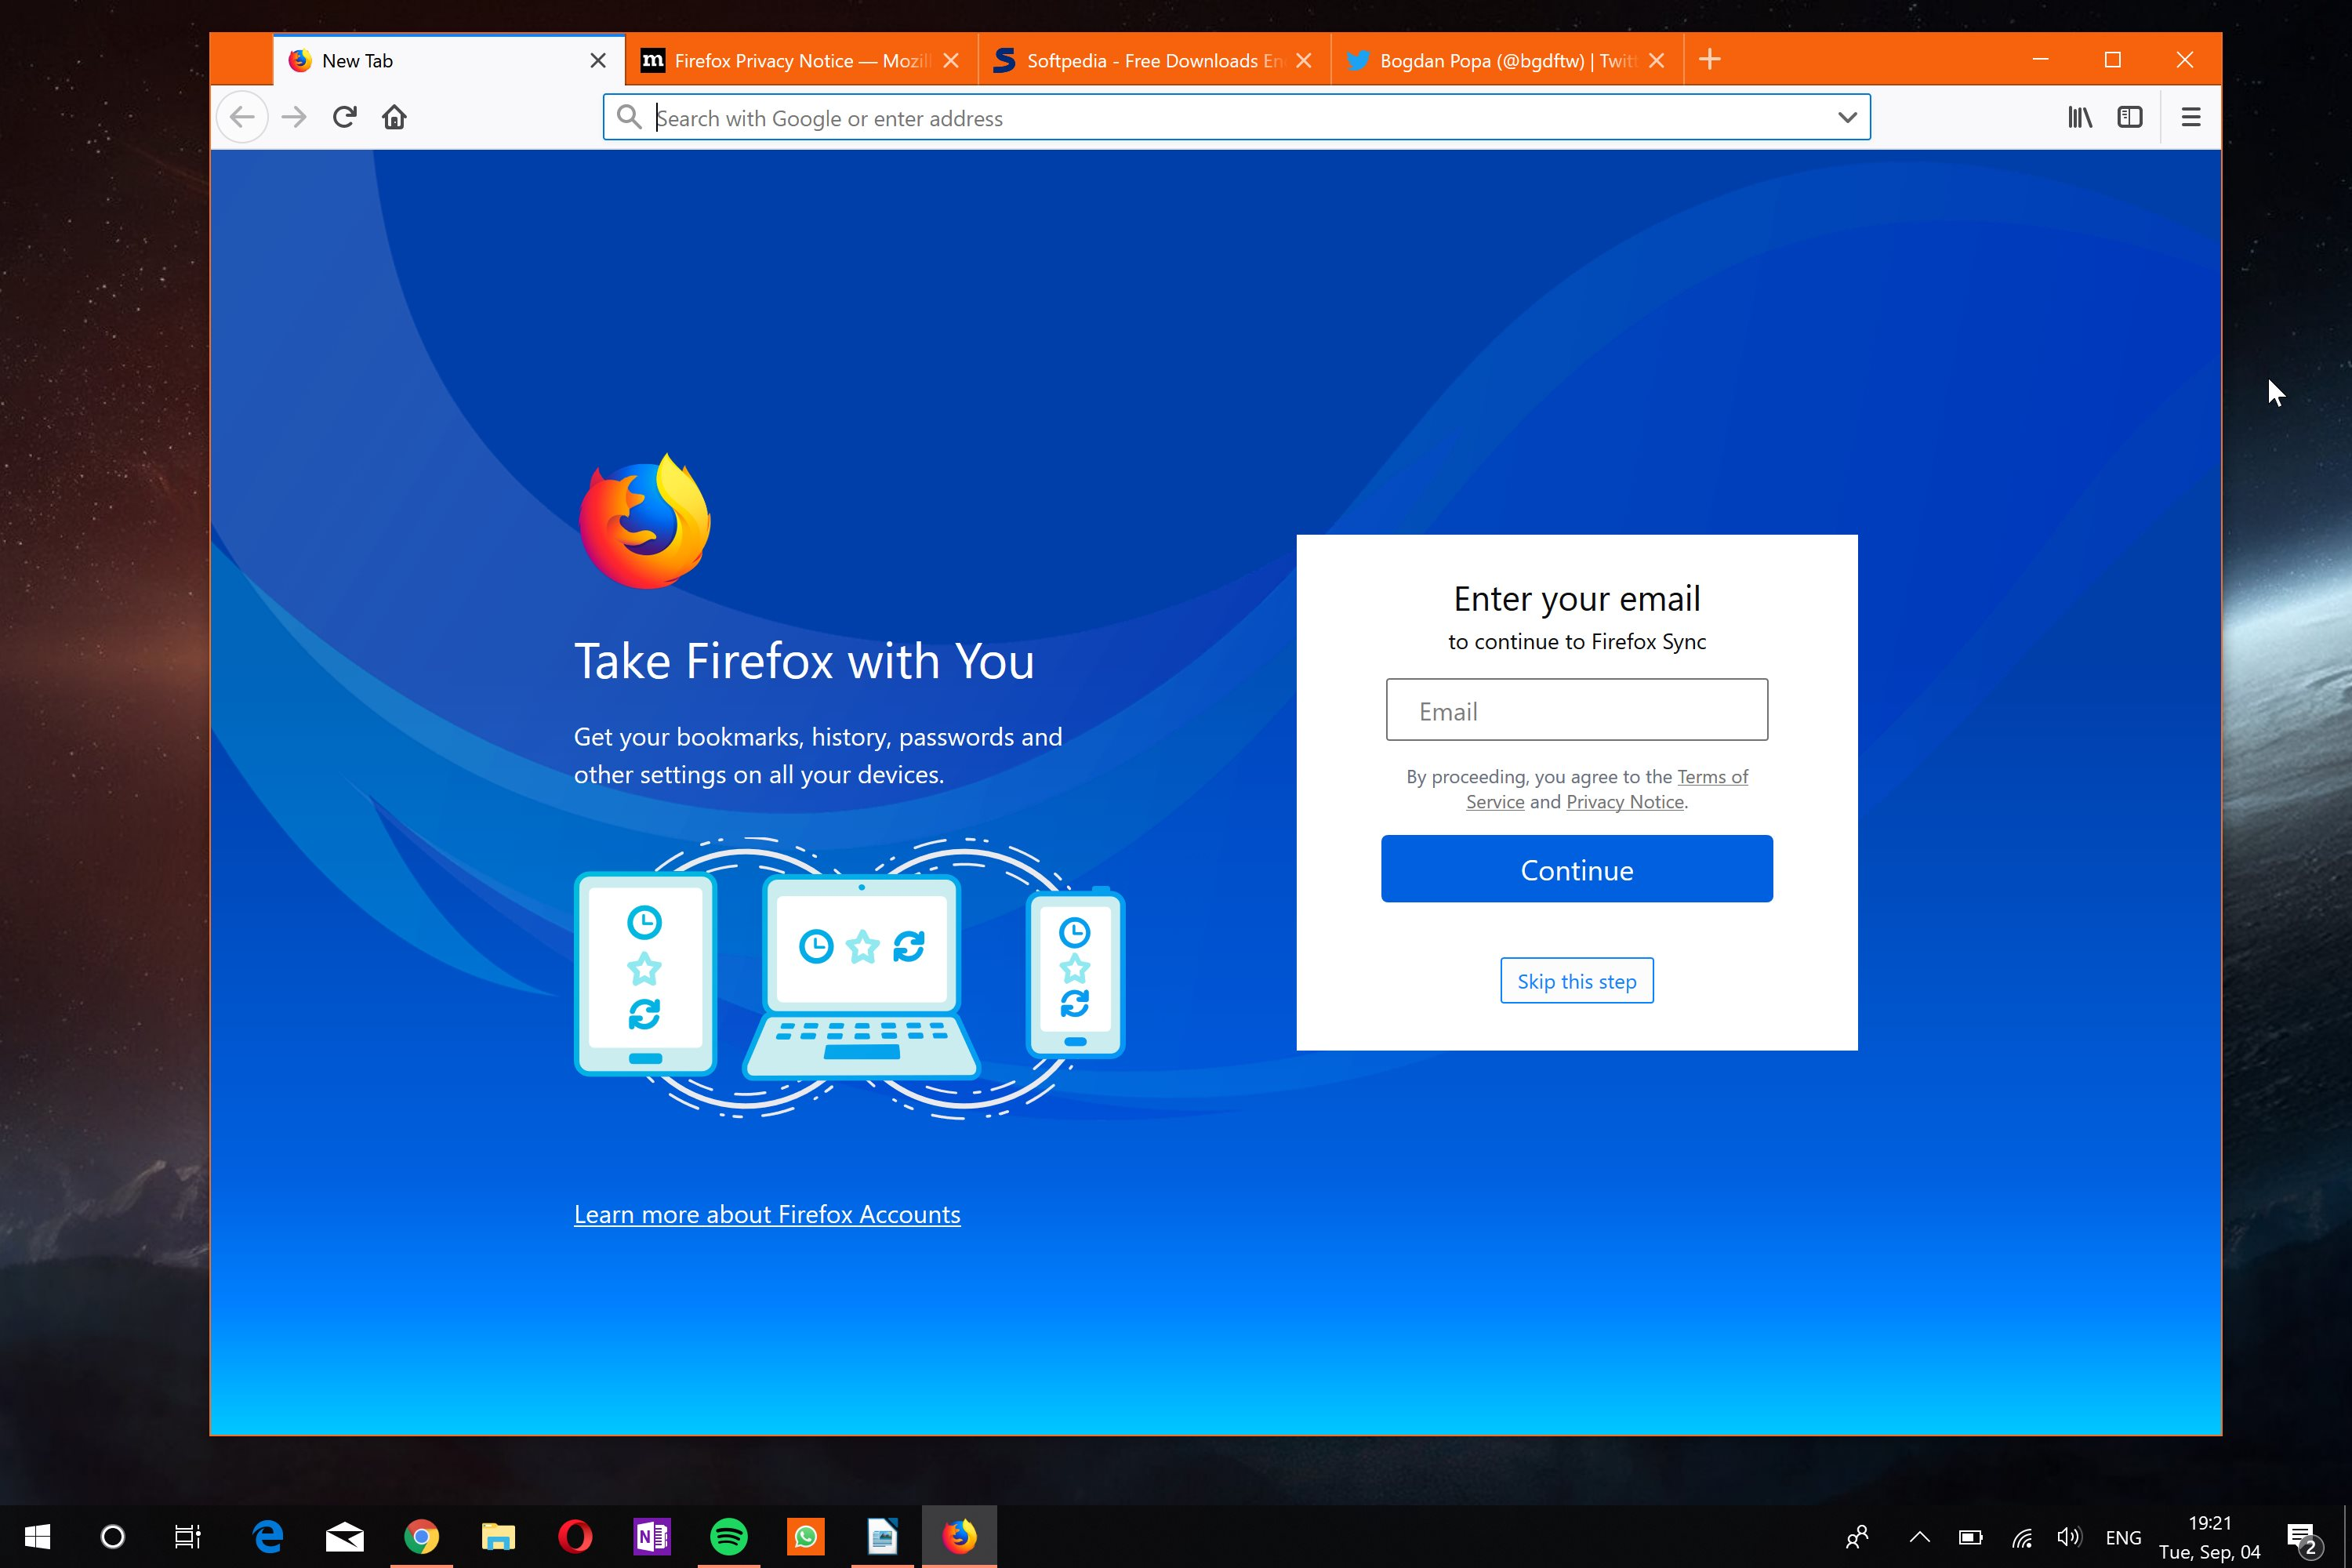 Mozilla Firefox 62 Now Available for Download on Windows, Linux, and